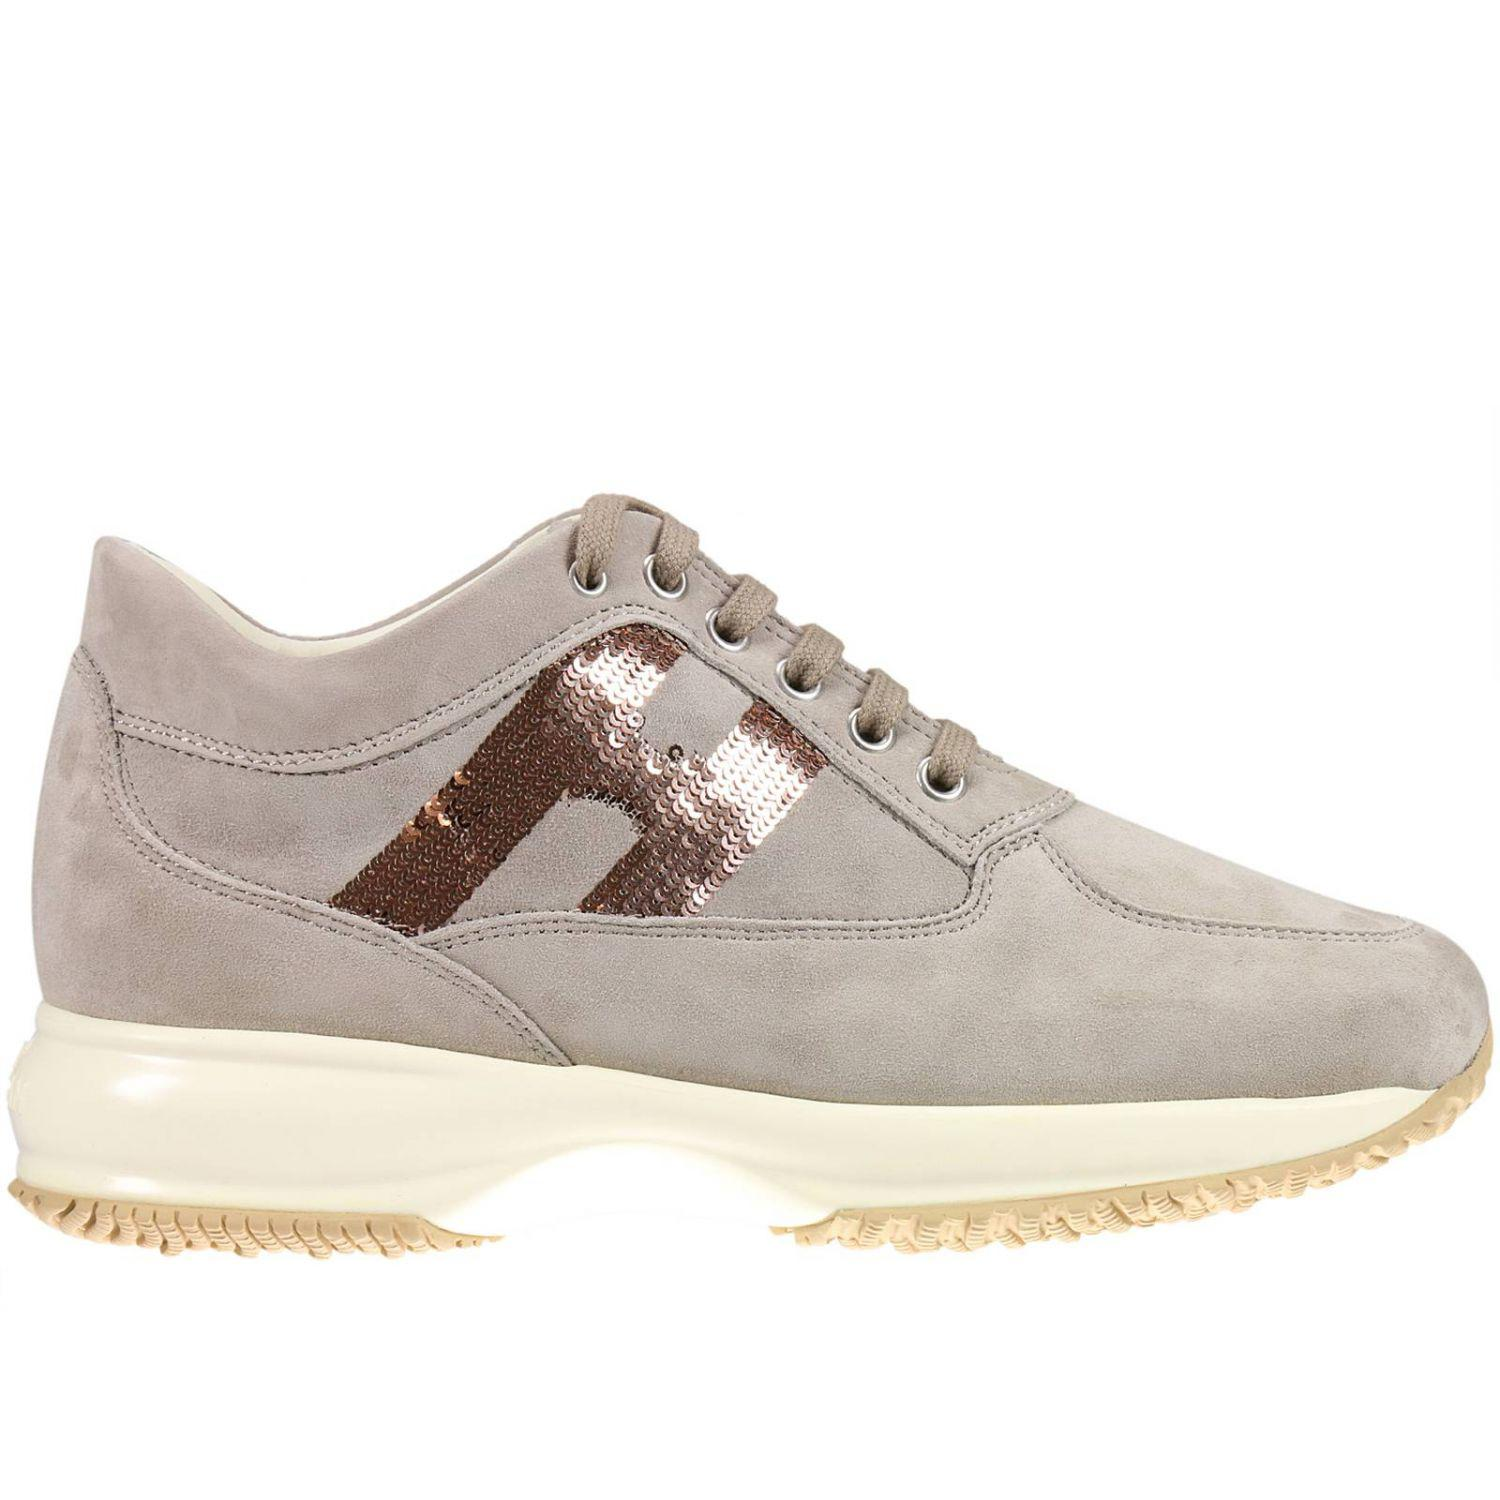 Lyst Hogan Sneakers Shoes Women In Natural